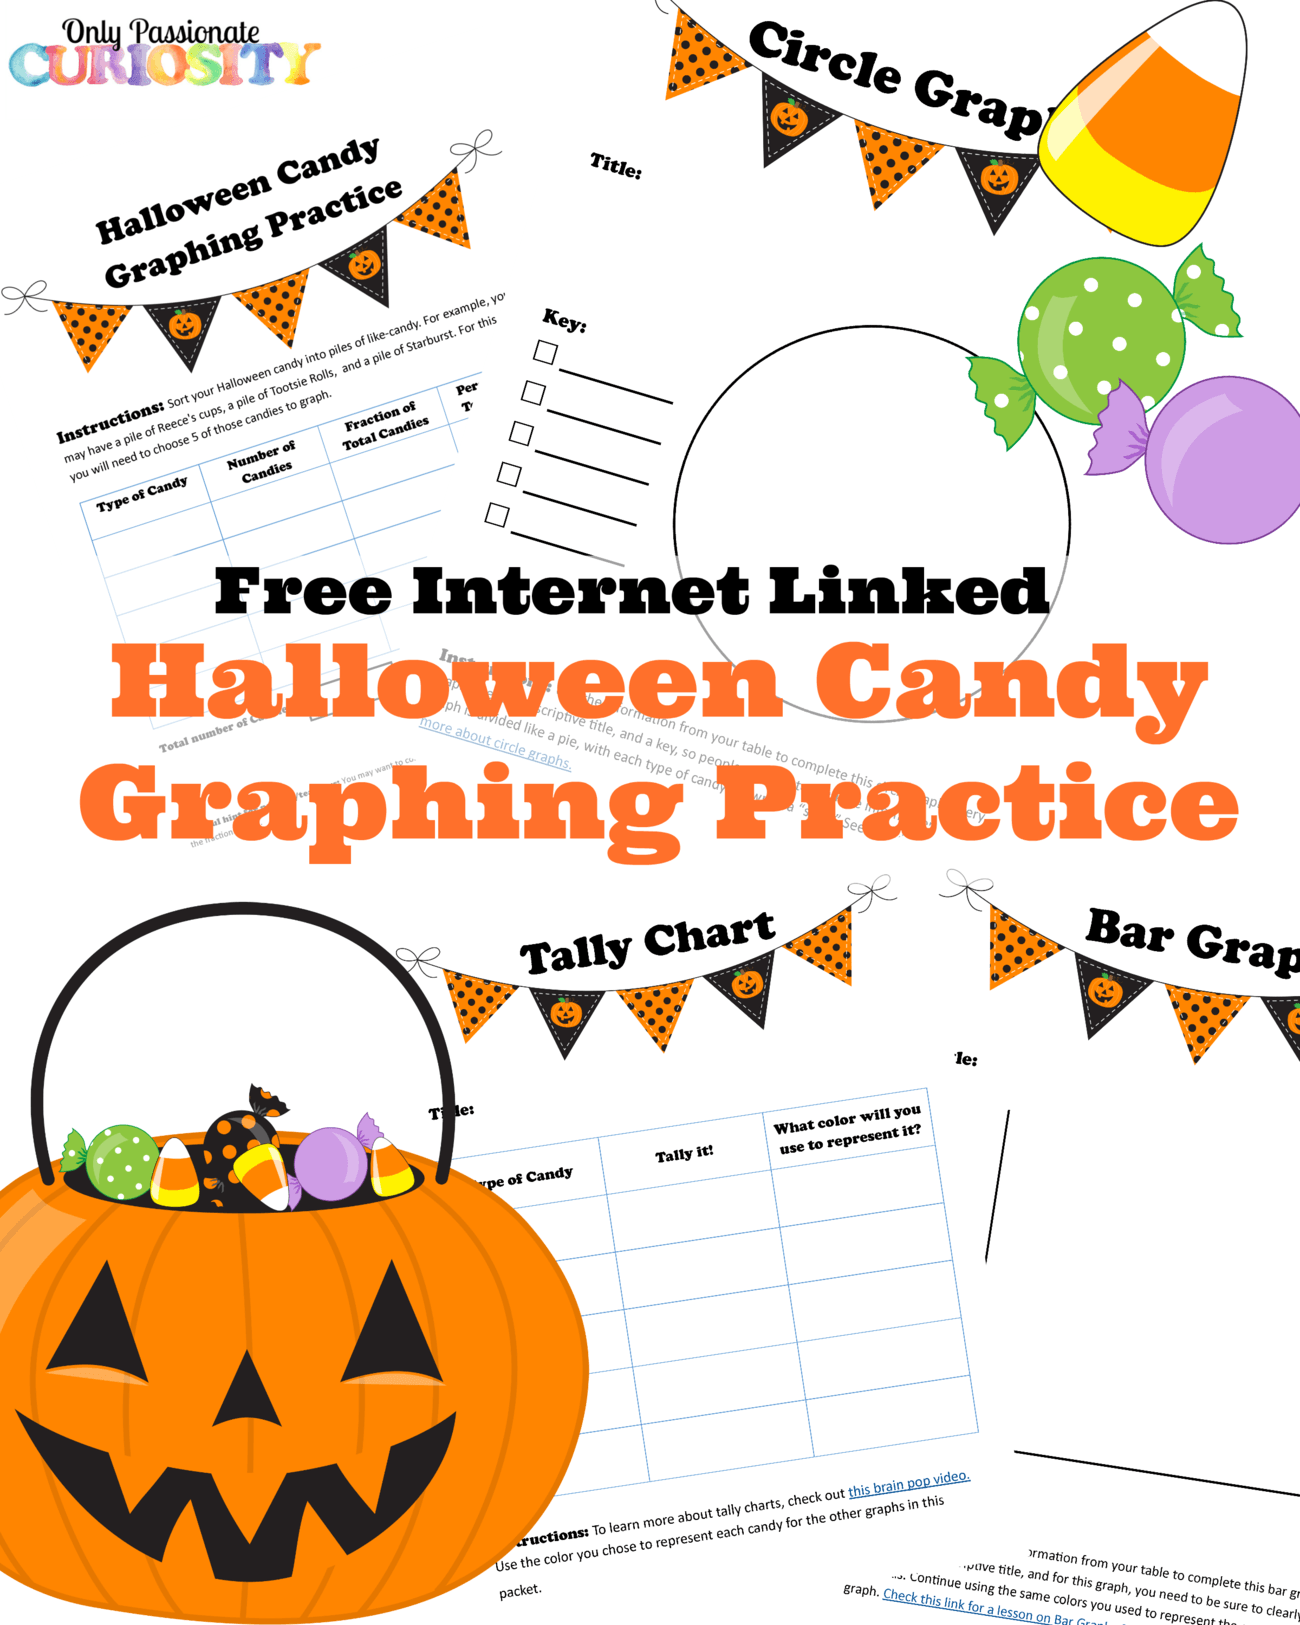 Halloween Candy Graphing Practice {Free Printable} - Only